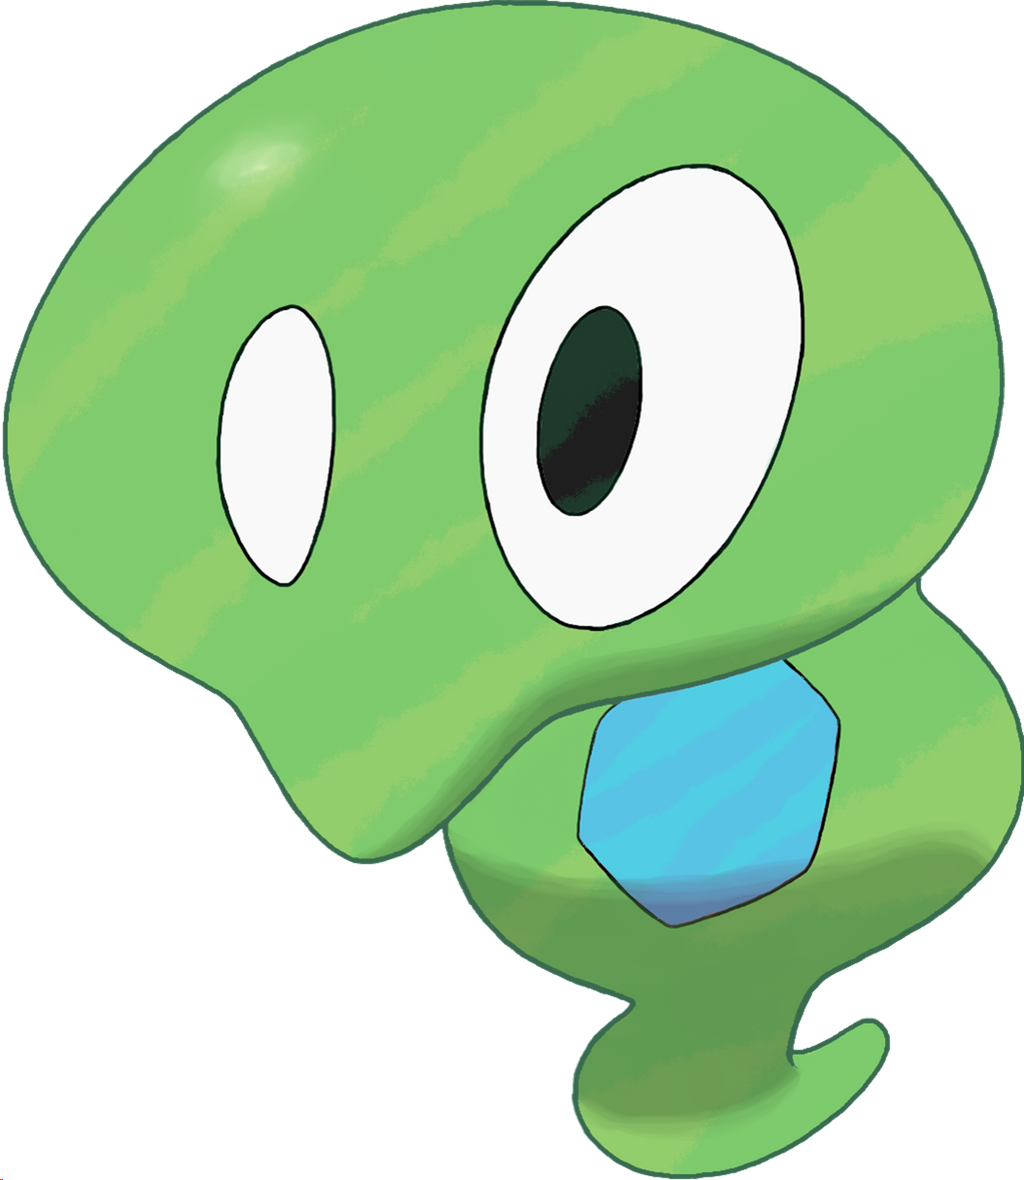 Squishy Pokemon Coloring Pages : Pokemon Squishy Zygarde Forms Pokemon Images Pokemon Images